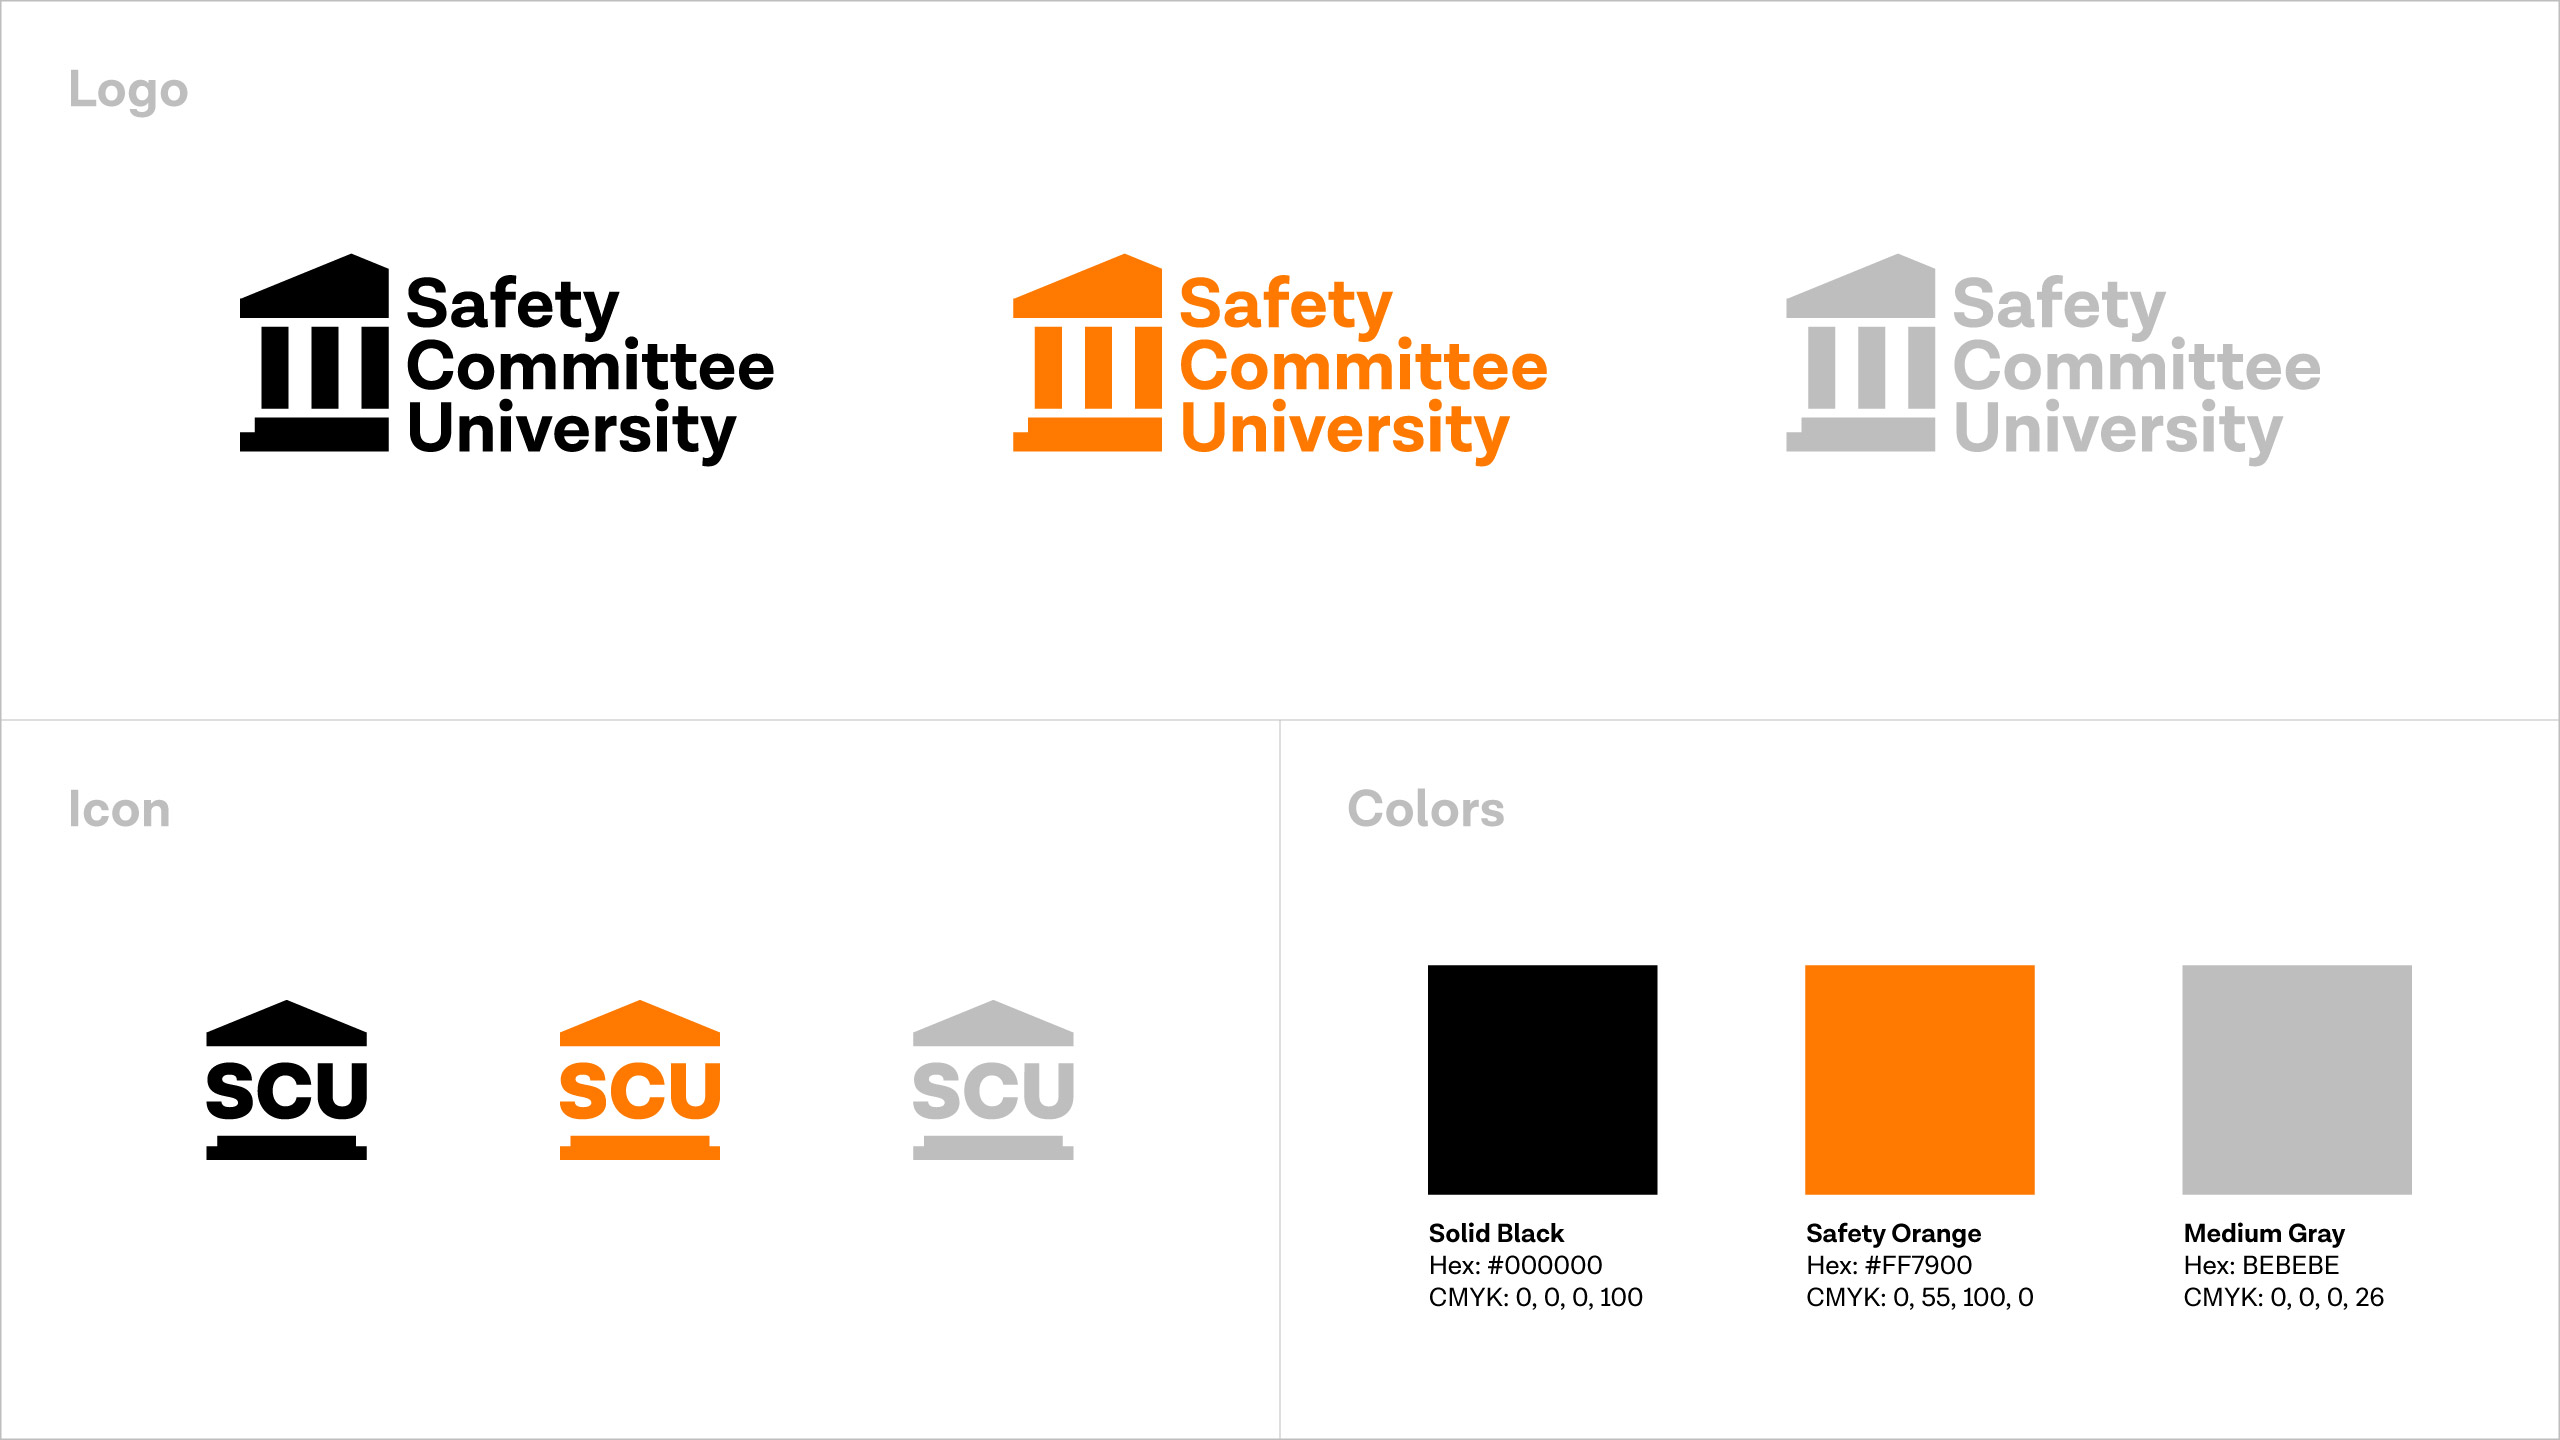 Safety Committee University brand guide